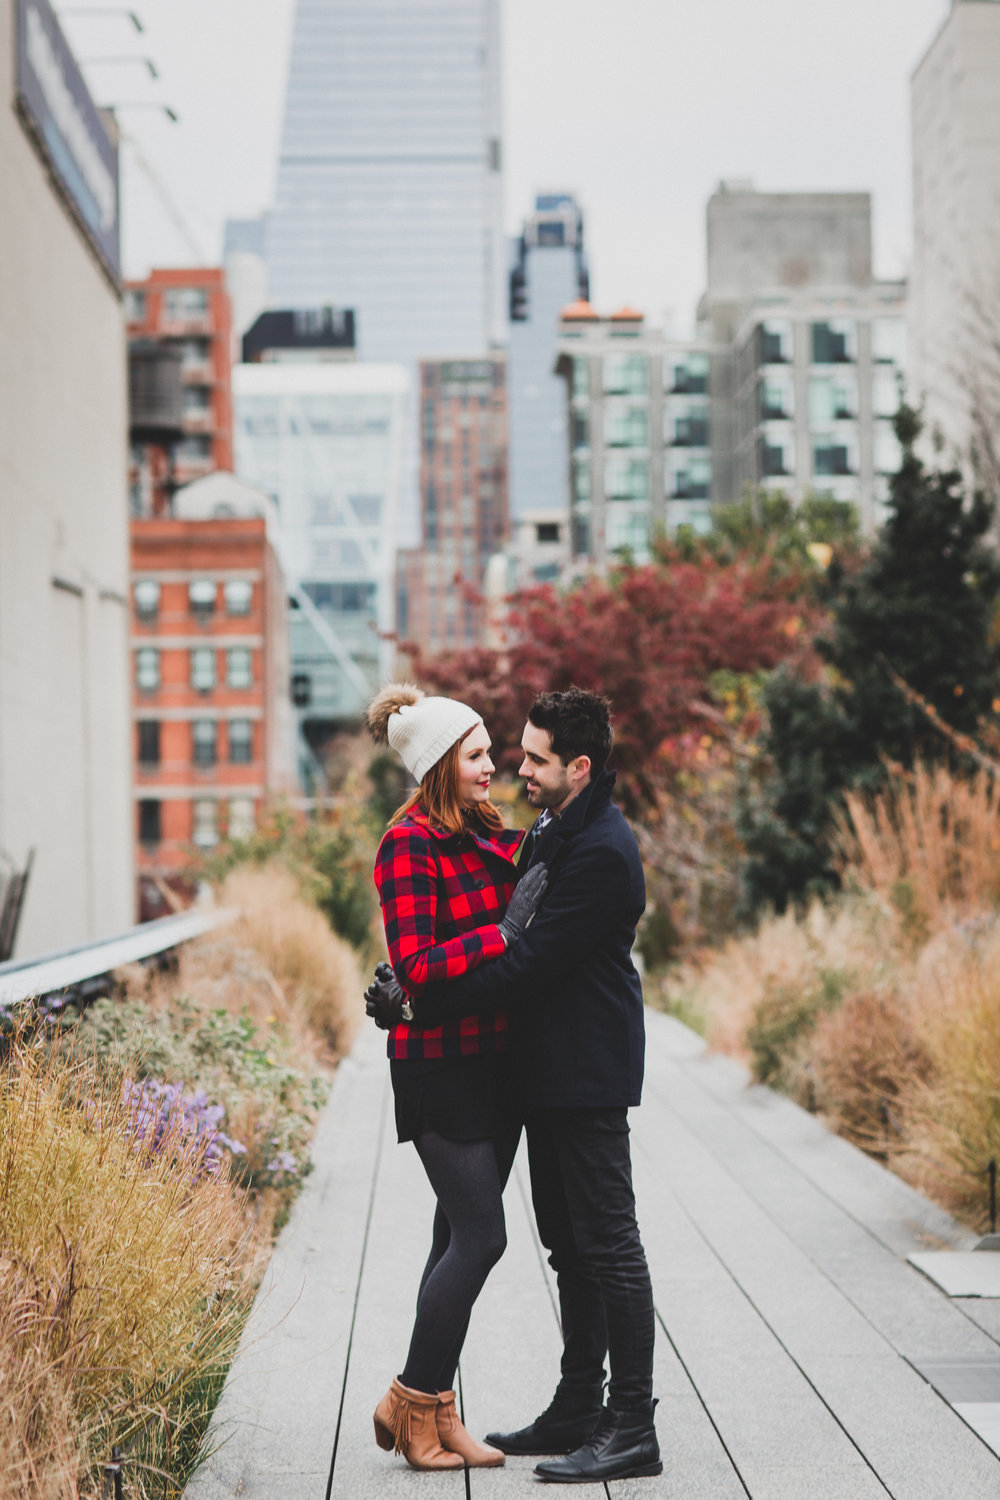 The-High-Line-Manhattan-Fall-Engagement-Photos-by-Elvira-Kalviste-Photography-11.jpg